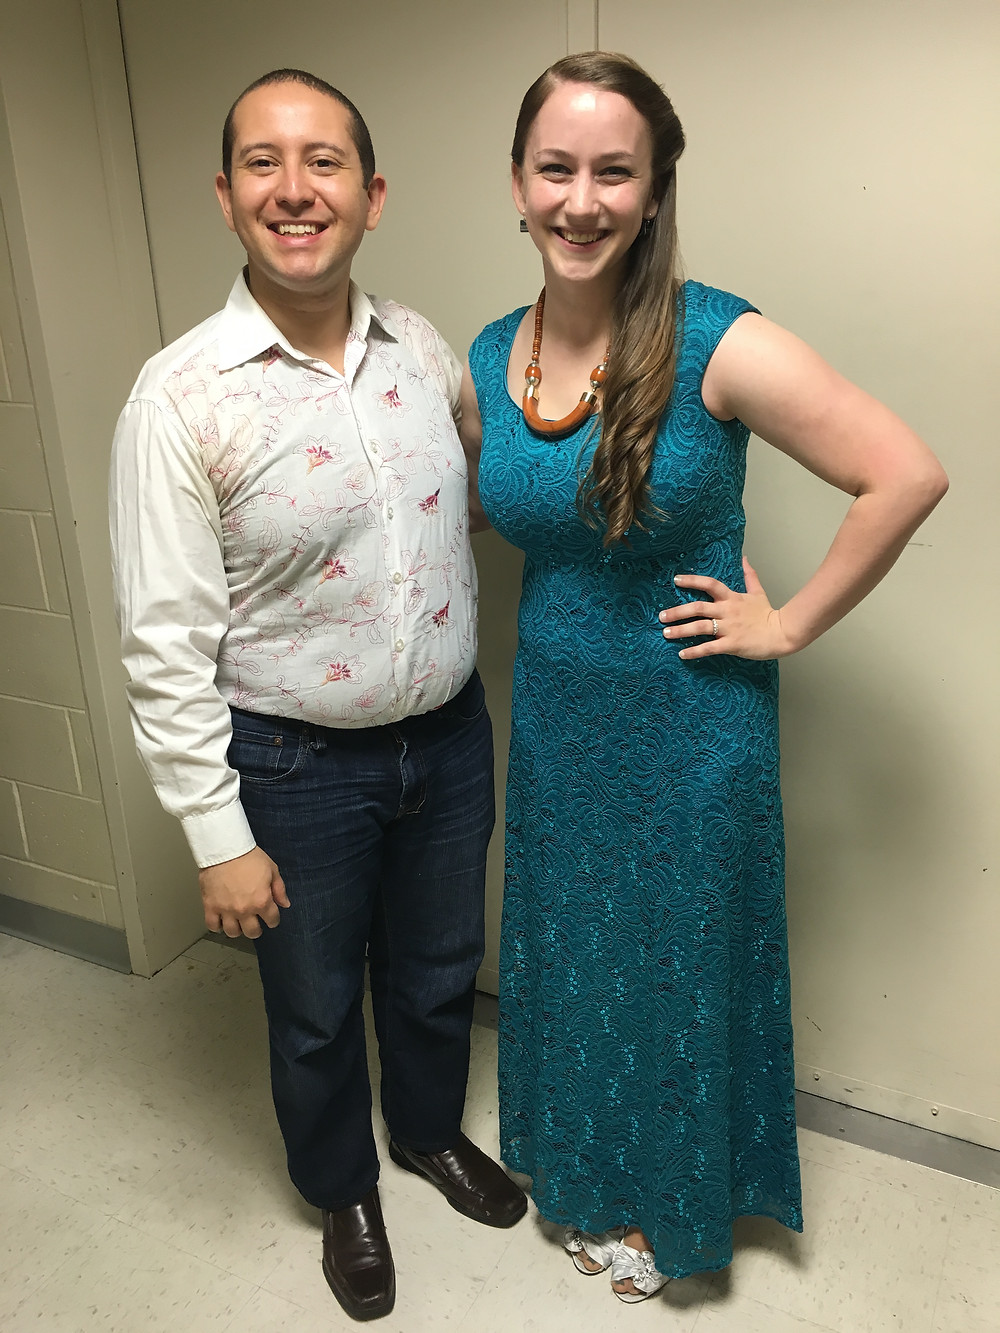 Daniel and I backstage before we began our recital!